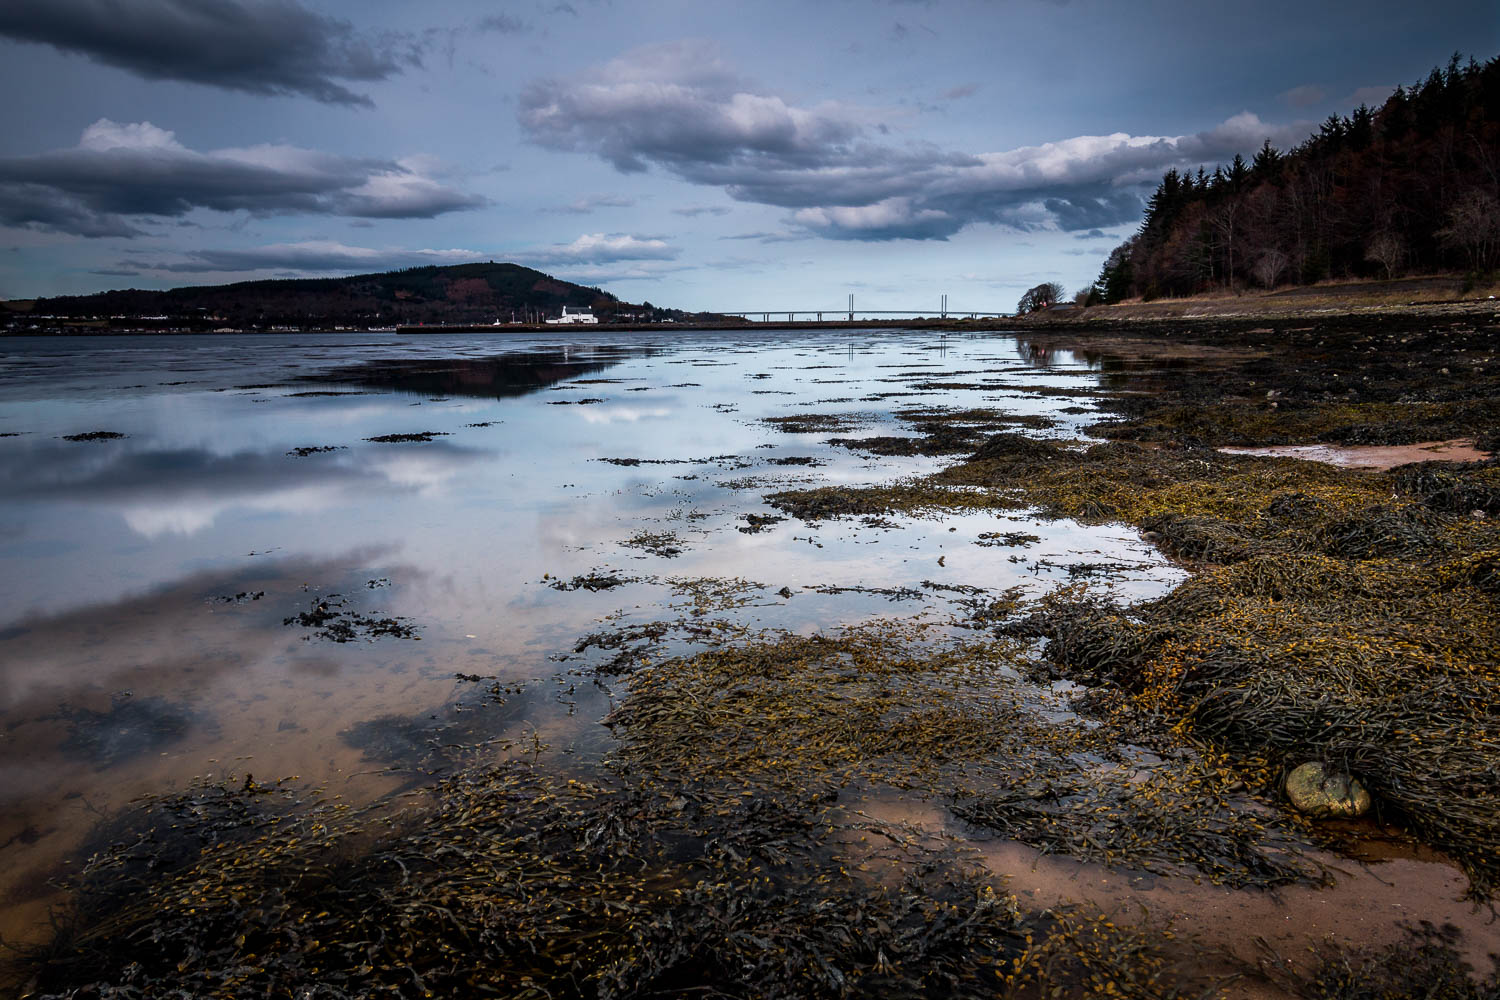 Looking to the Kessock Bridge from the shores of the Beauly Firth.